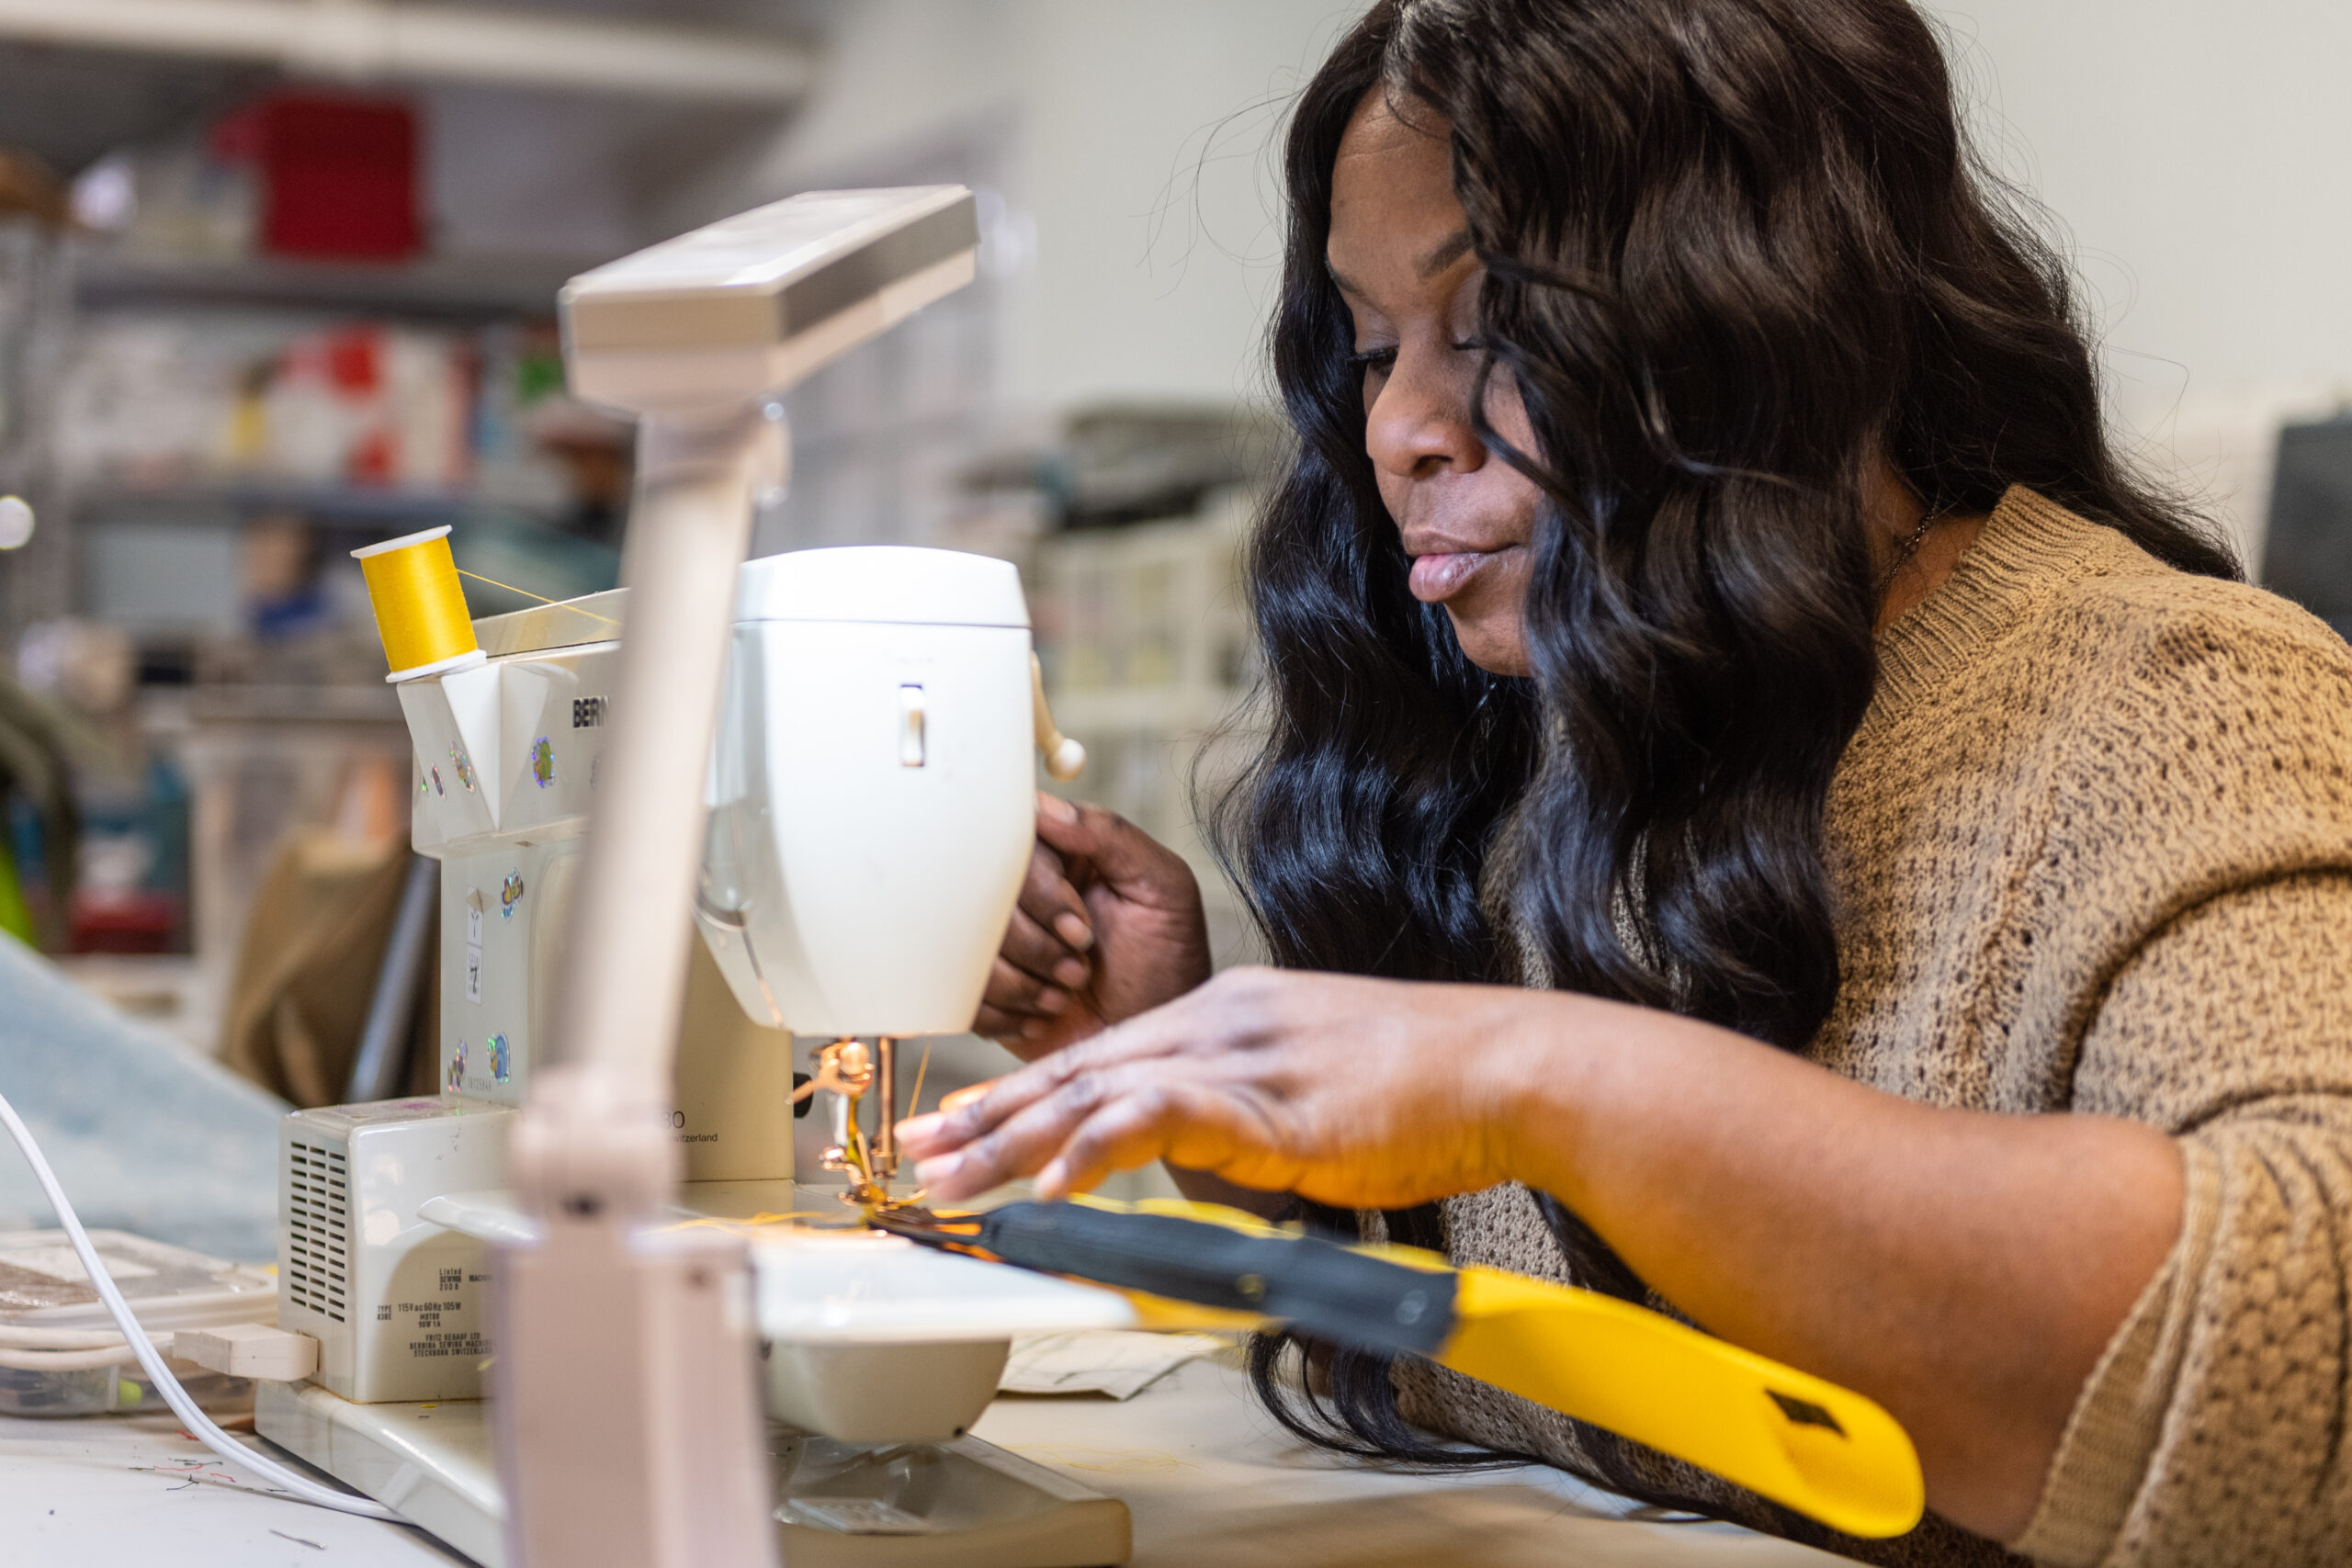 """Program participant Yolanda practices her sewing skills at Sew Great Detroit at Alternatives For Girls. """"It's motivation, and it's a new skill for me. Now, I'm teaching my daughters."""" Image credit: Eric Bronson, University of Michigan Photography"""